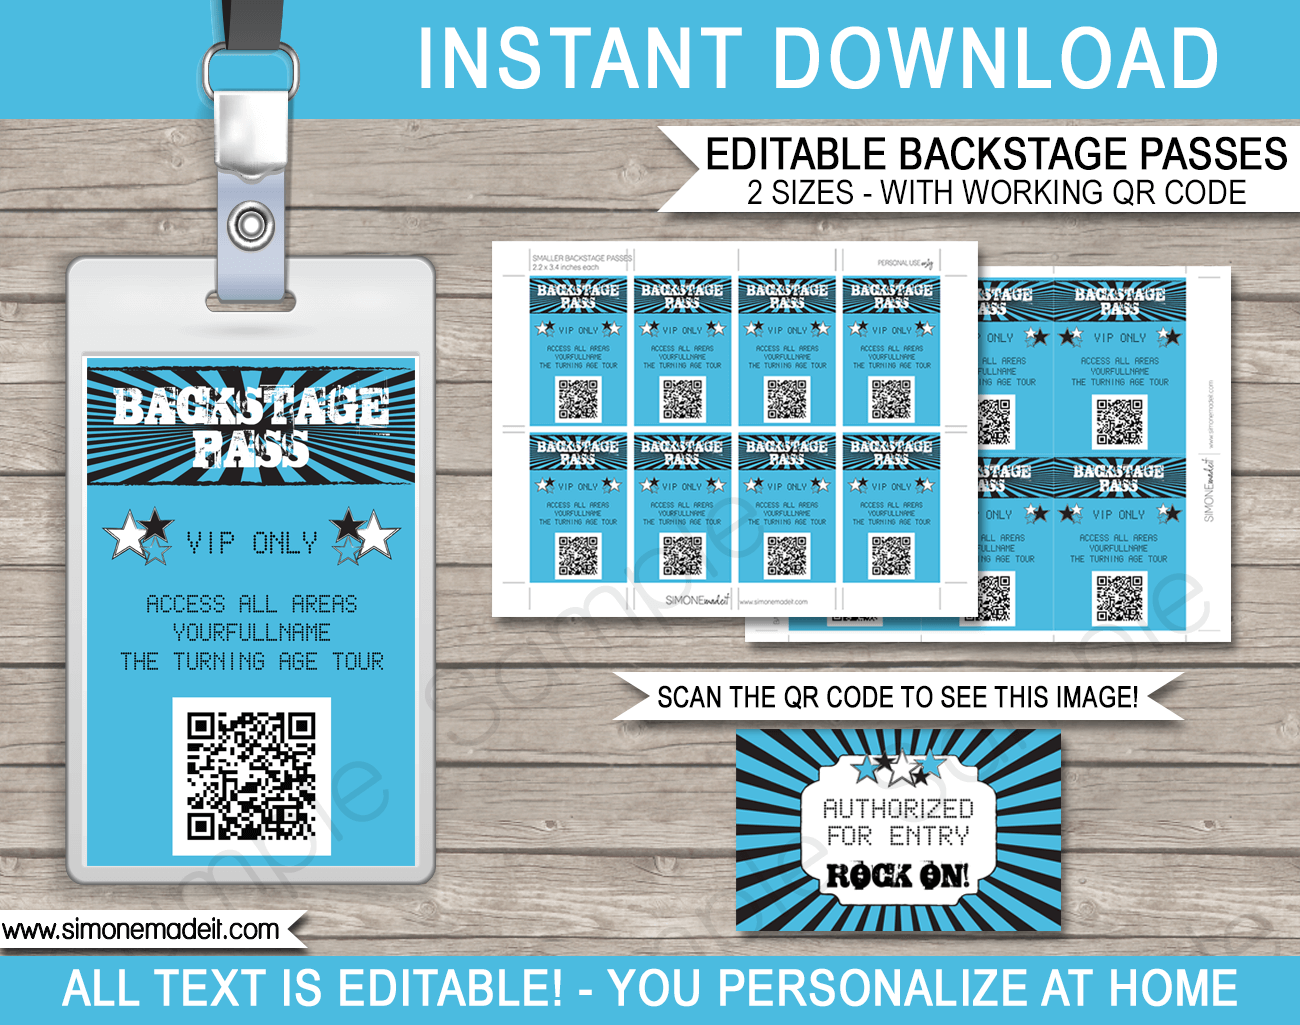 Rockstar Birthday Party Backstage Passes | Printable Inserts | QR Codes | Party Favors | Concert Theme | Editable DIY Template | $3.50 INSTANT DOWNLOAD via SIMONEmadeit.com